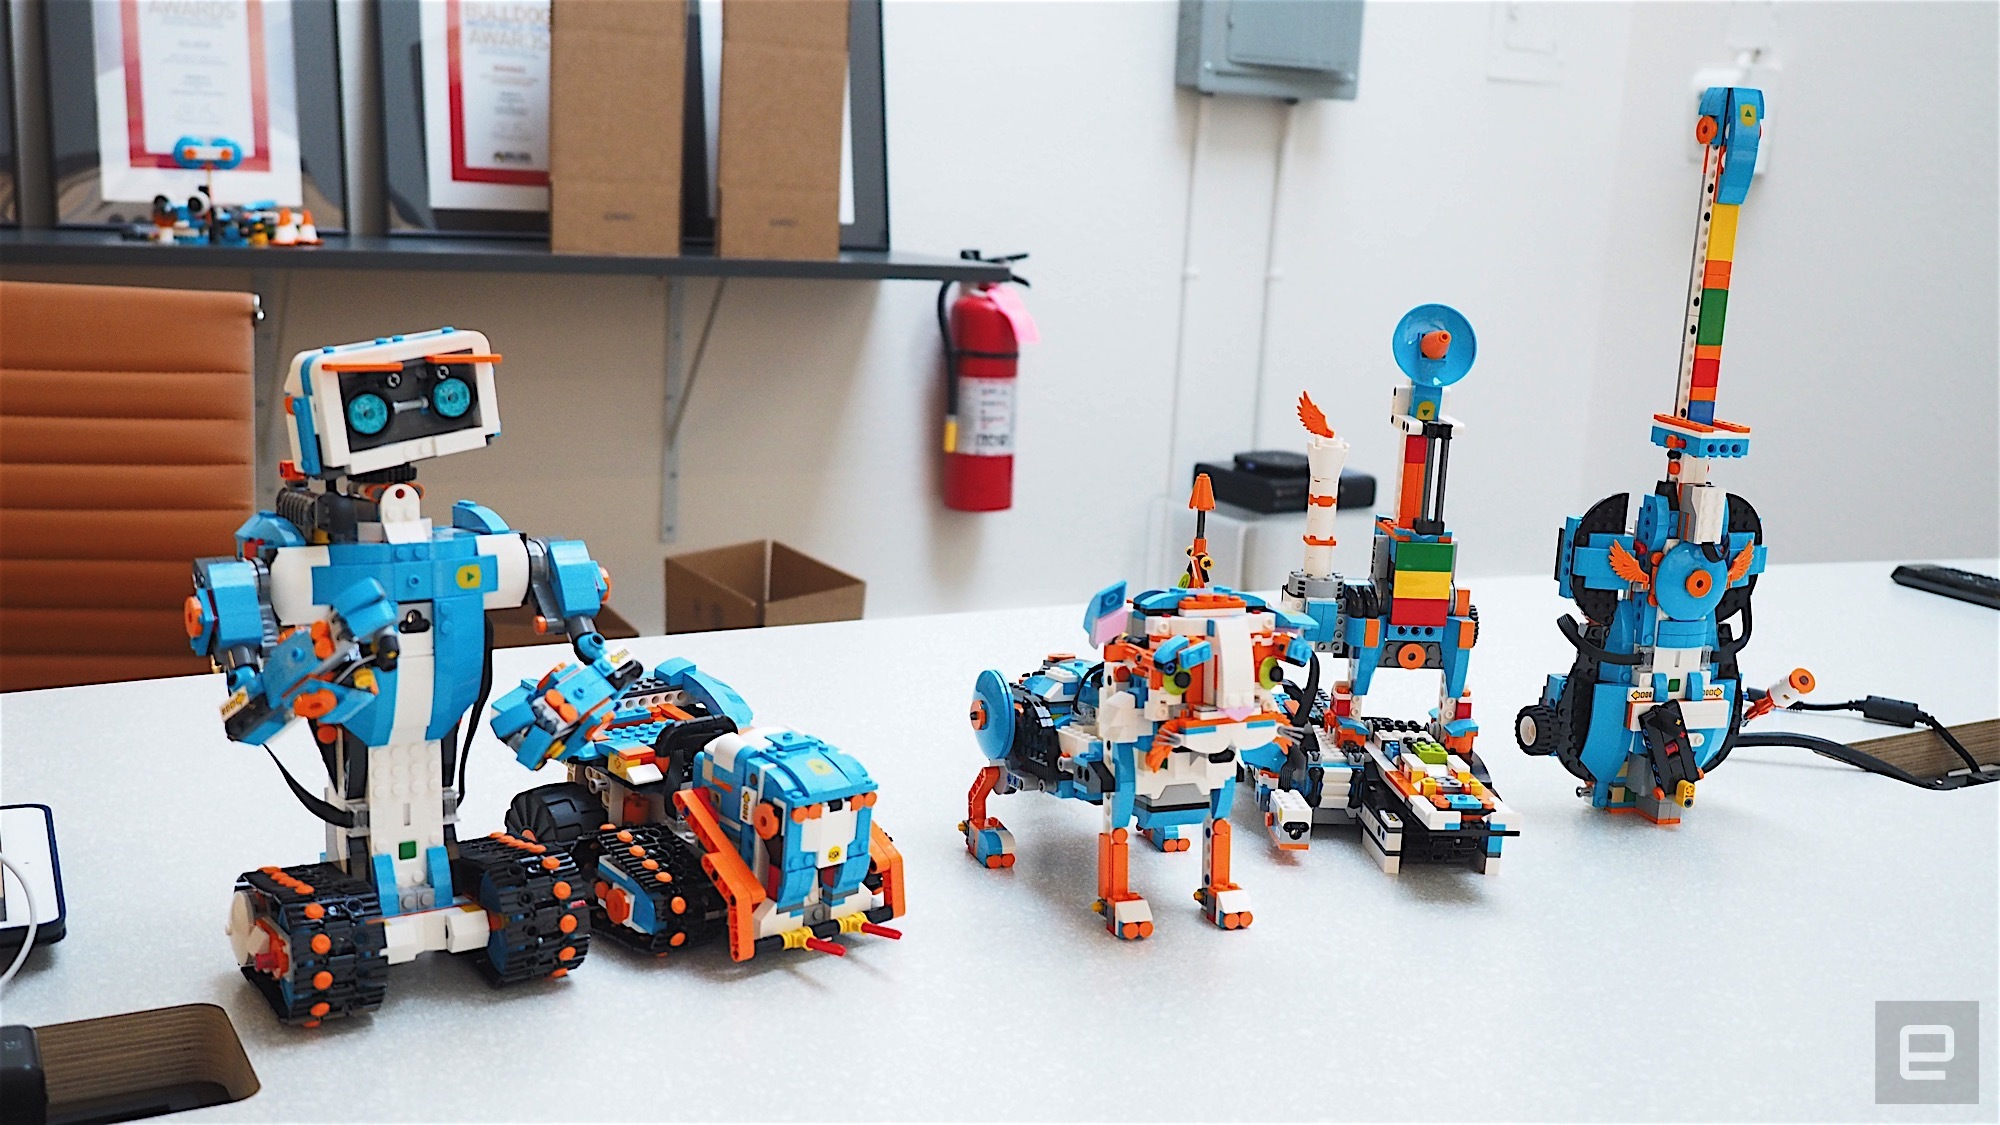 Here are some of the best coding toys for kids